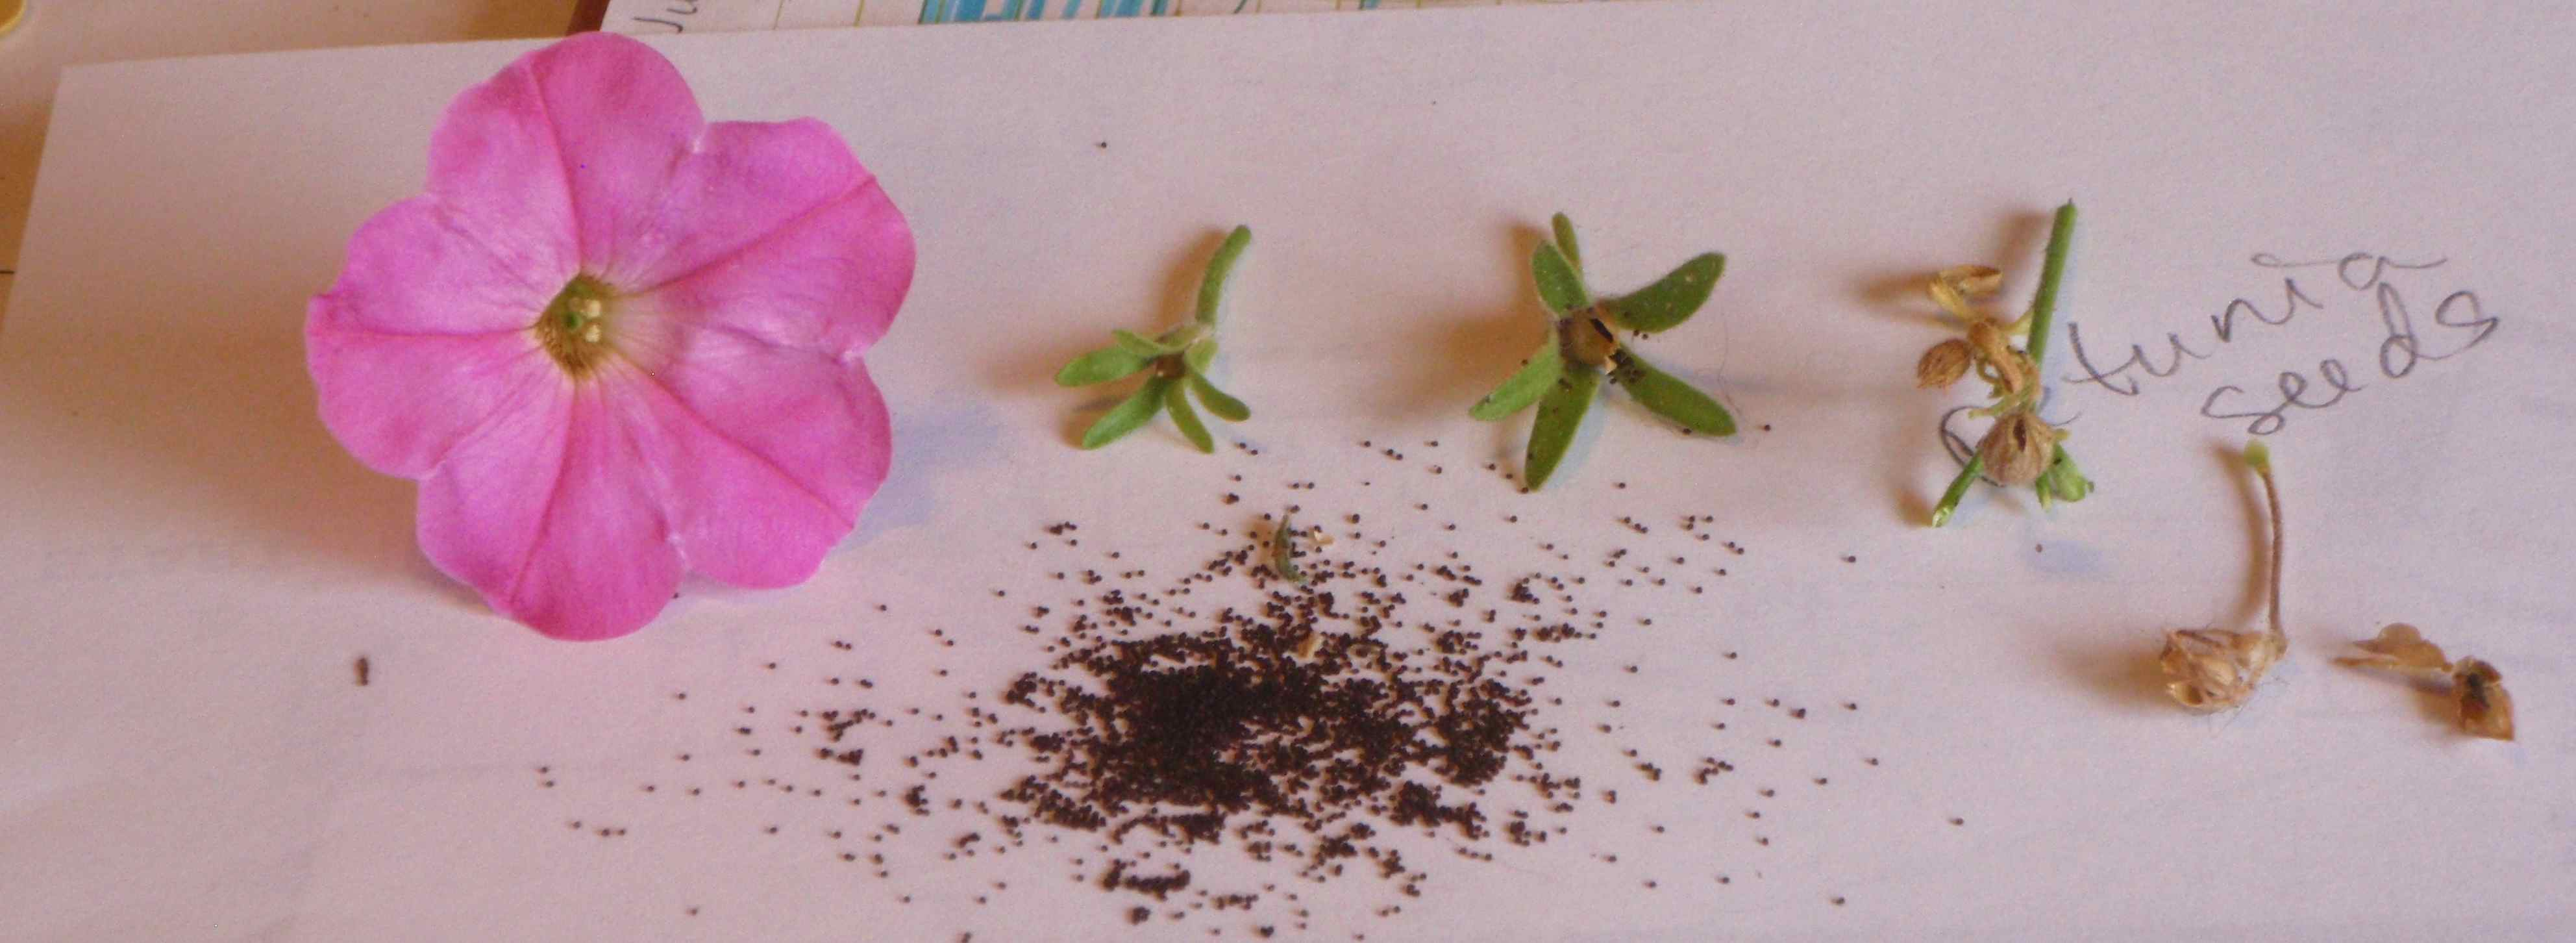 How to grow petunia from seeds -  Left To Right Freshly Picked Petunia Still Small Unripe Seed Pod Dry Pod